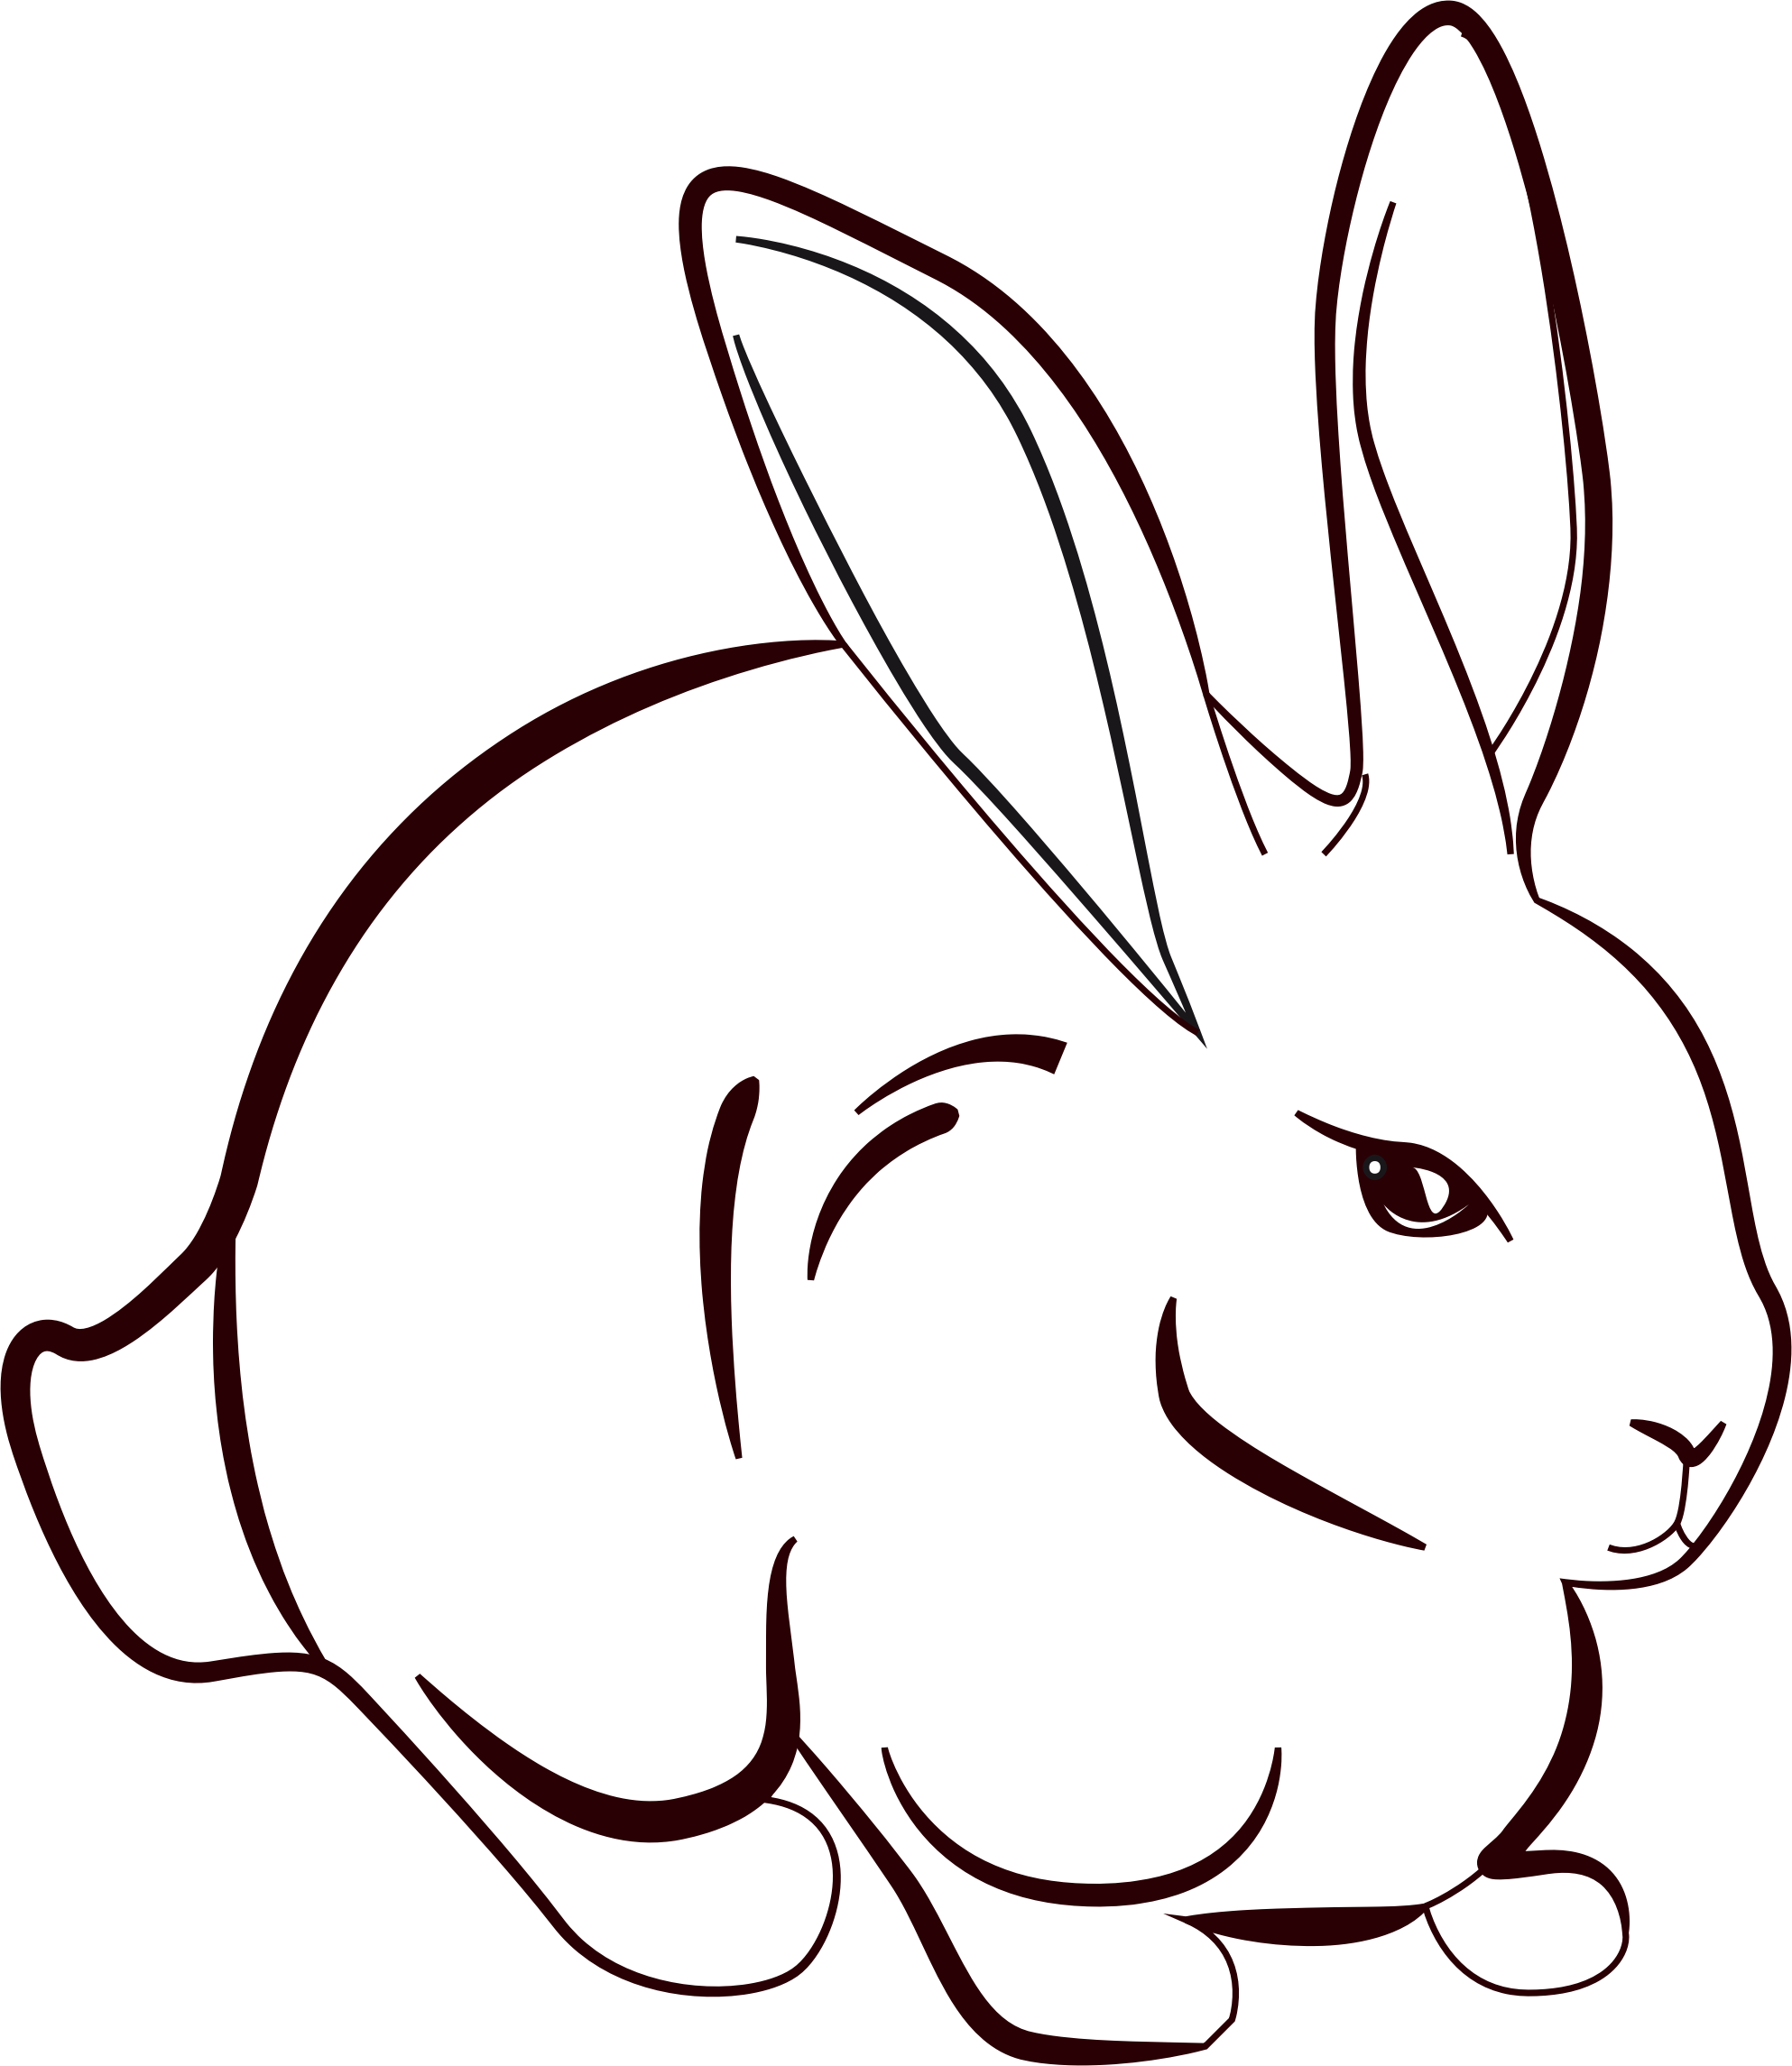 Rabbit Line Art Group with 59+ items.